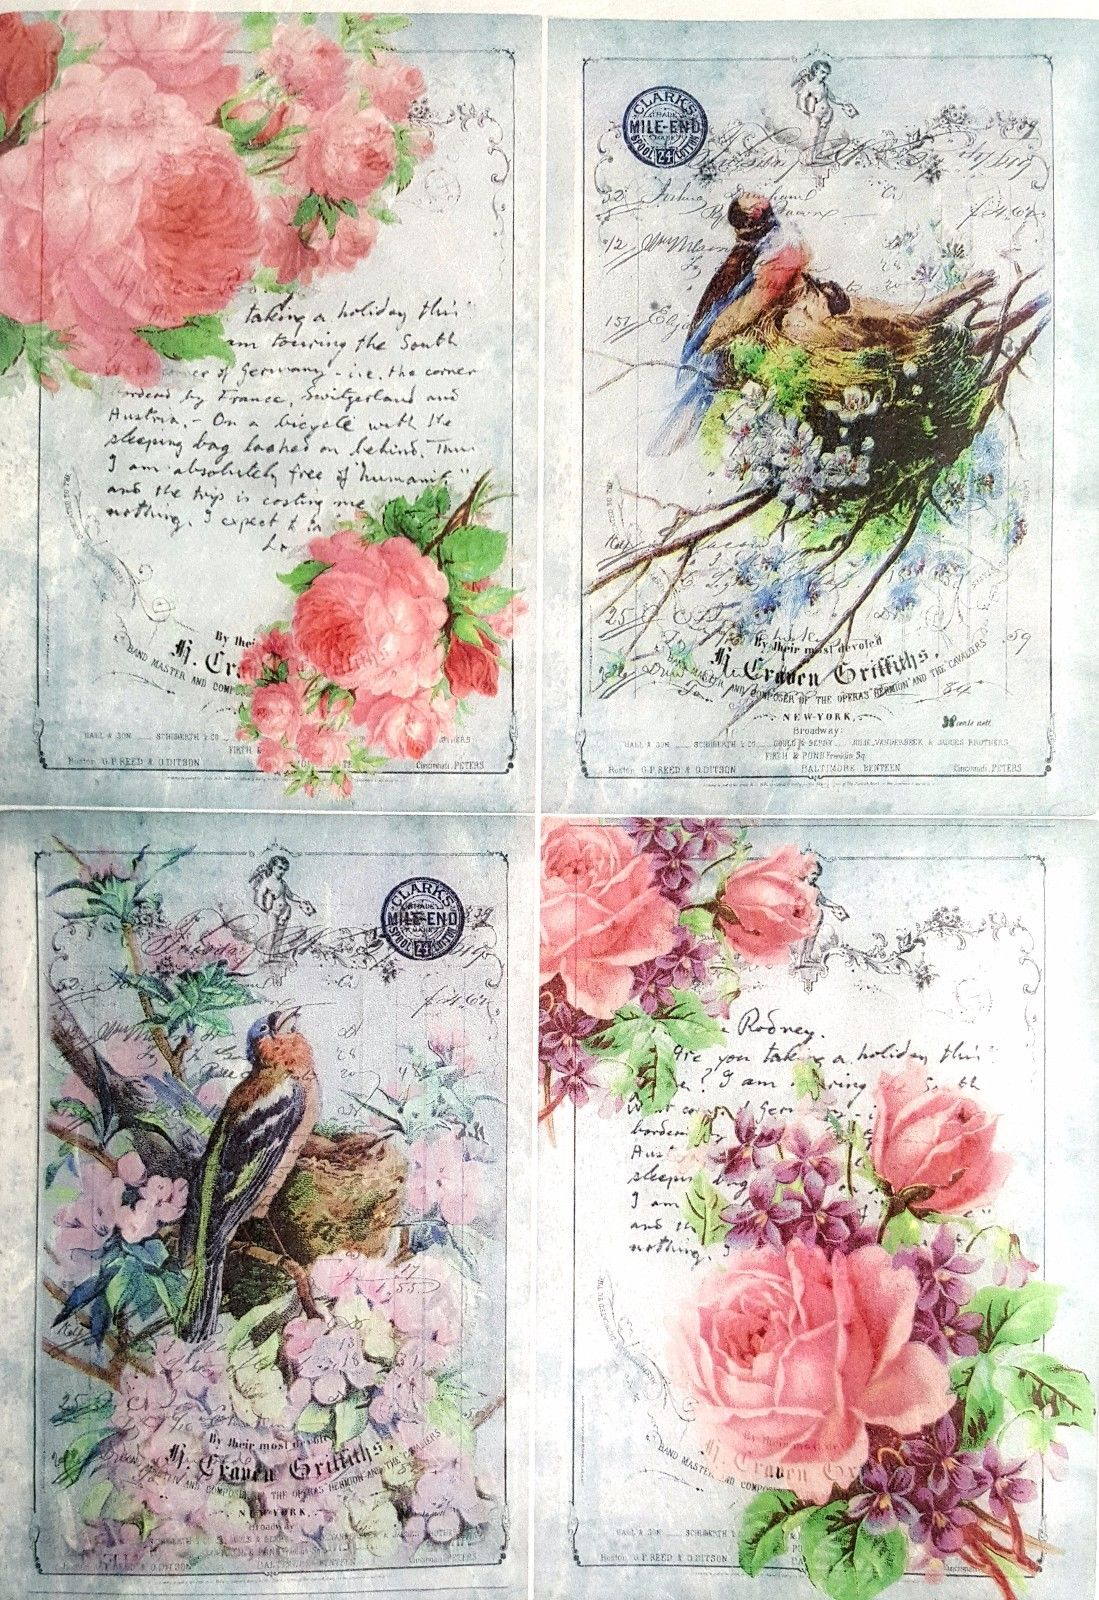 Scrapbooking Sheet Home Sweet Home Rose Big Rice Paper for Decoupage